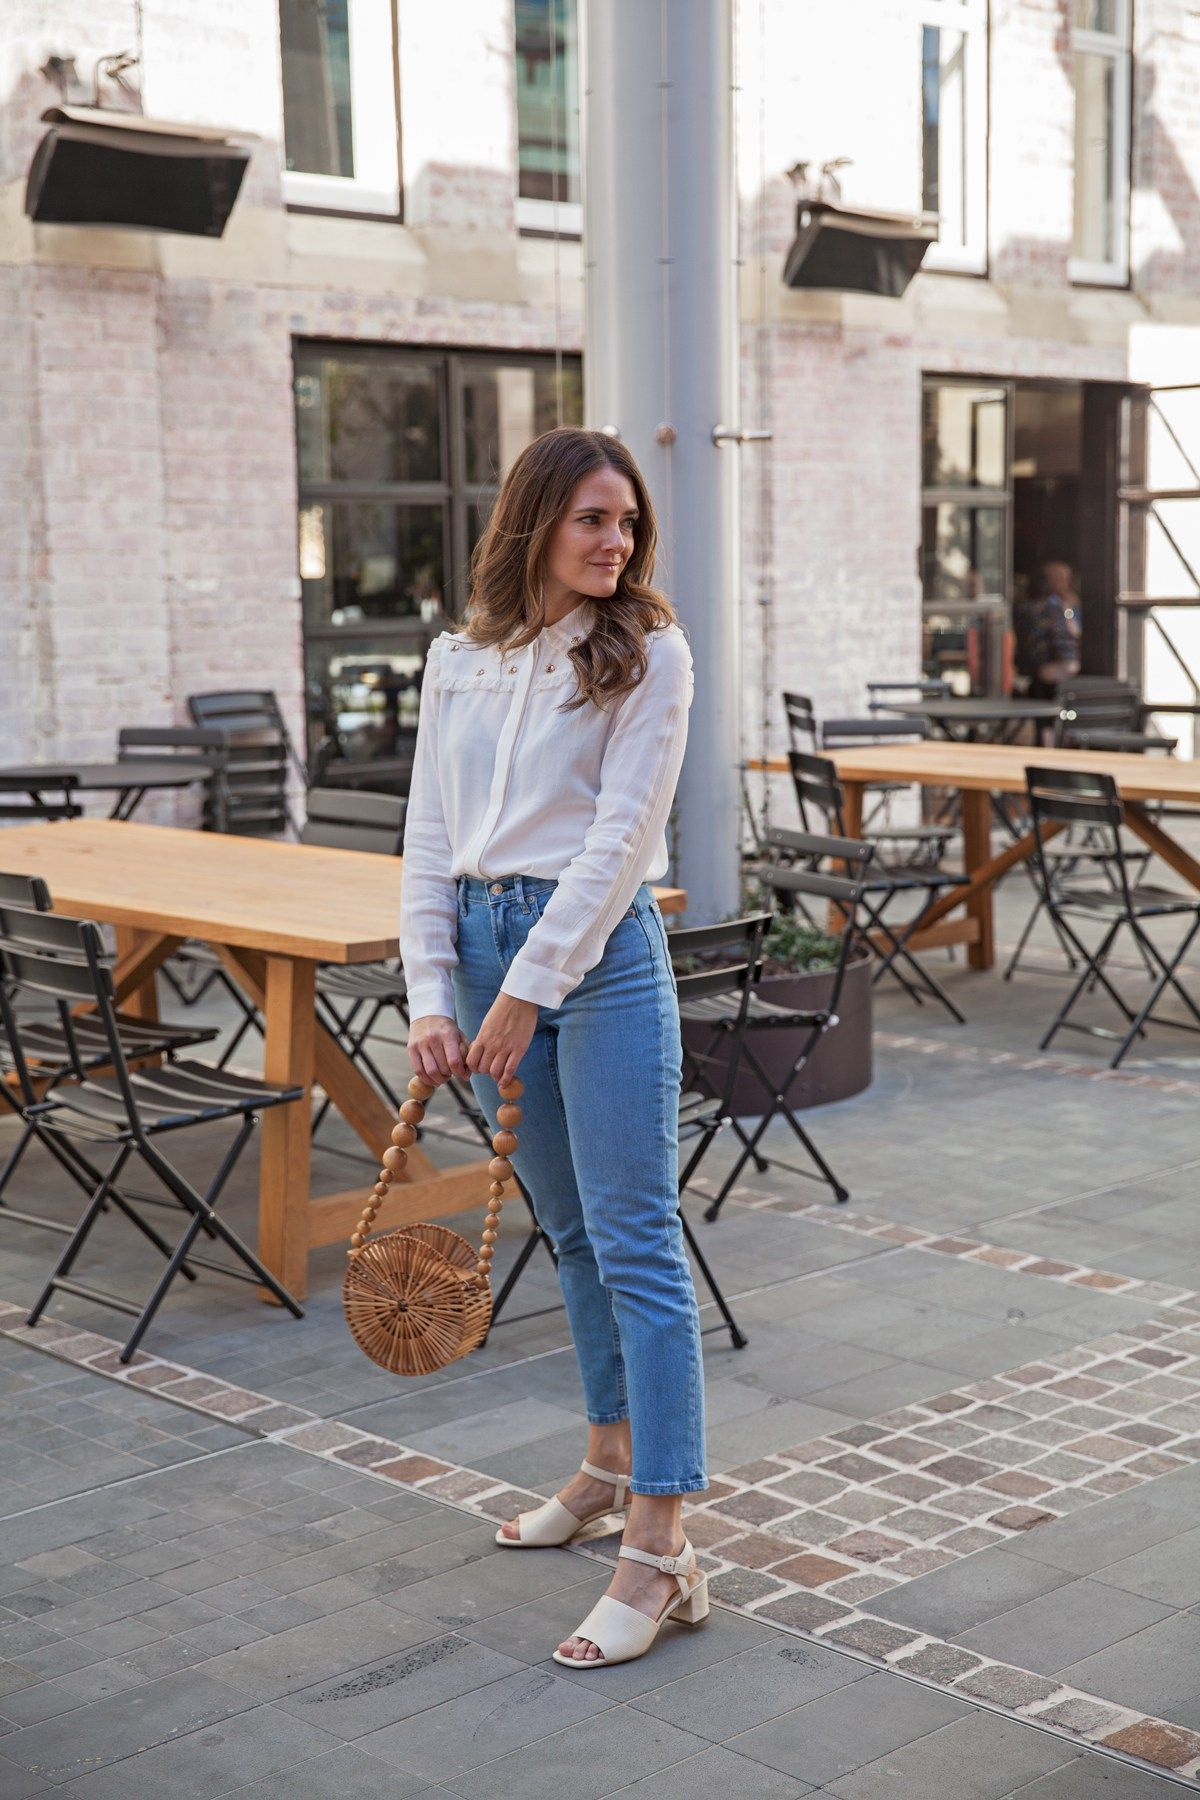 e0e163c48265 Everlane cheeky straight jean and block heeled sandal worn by Australian  fashion blogger Jenelle Witty of